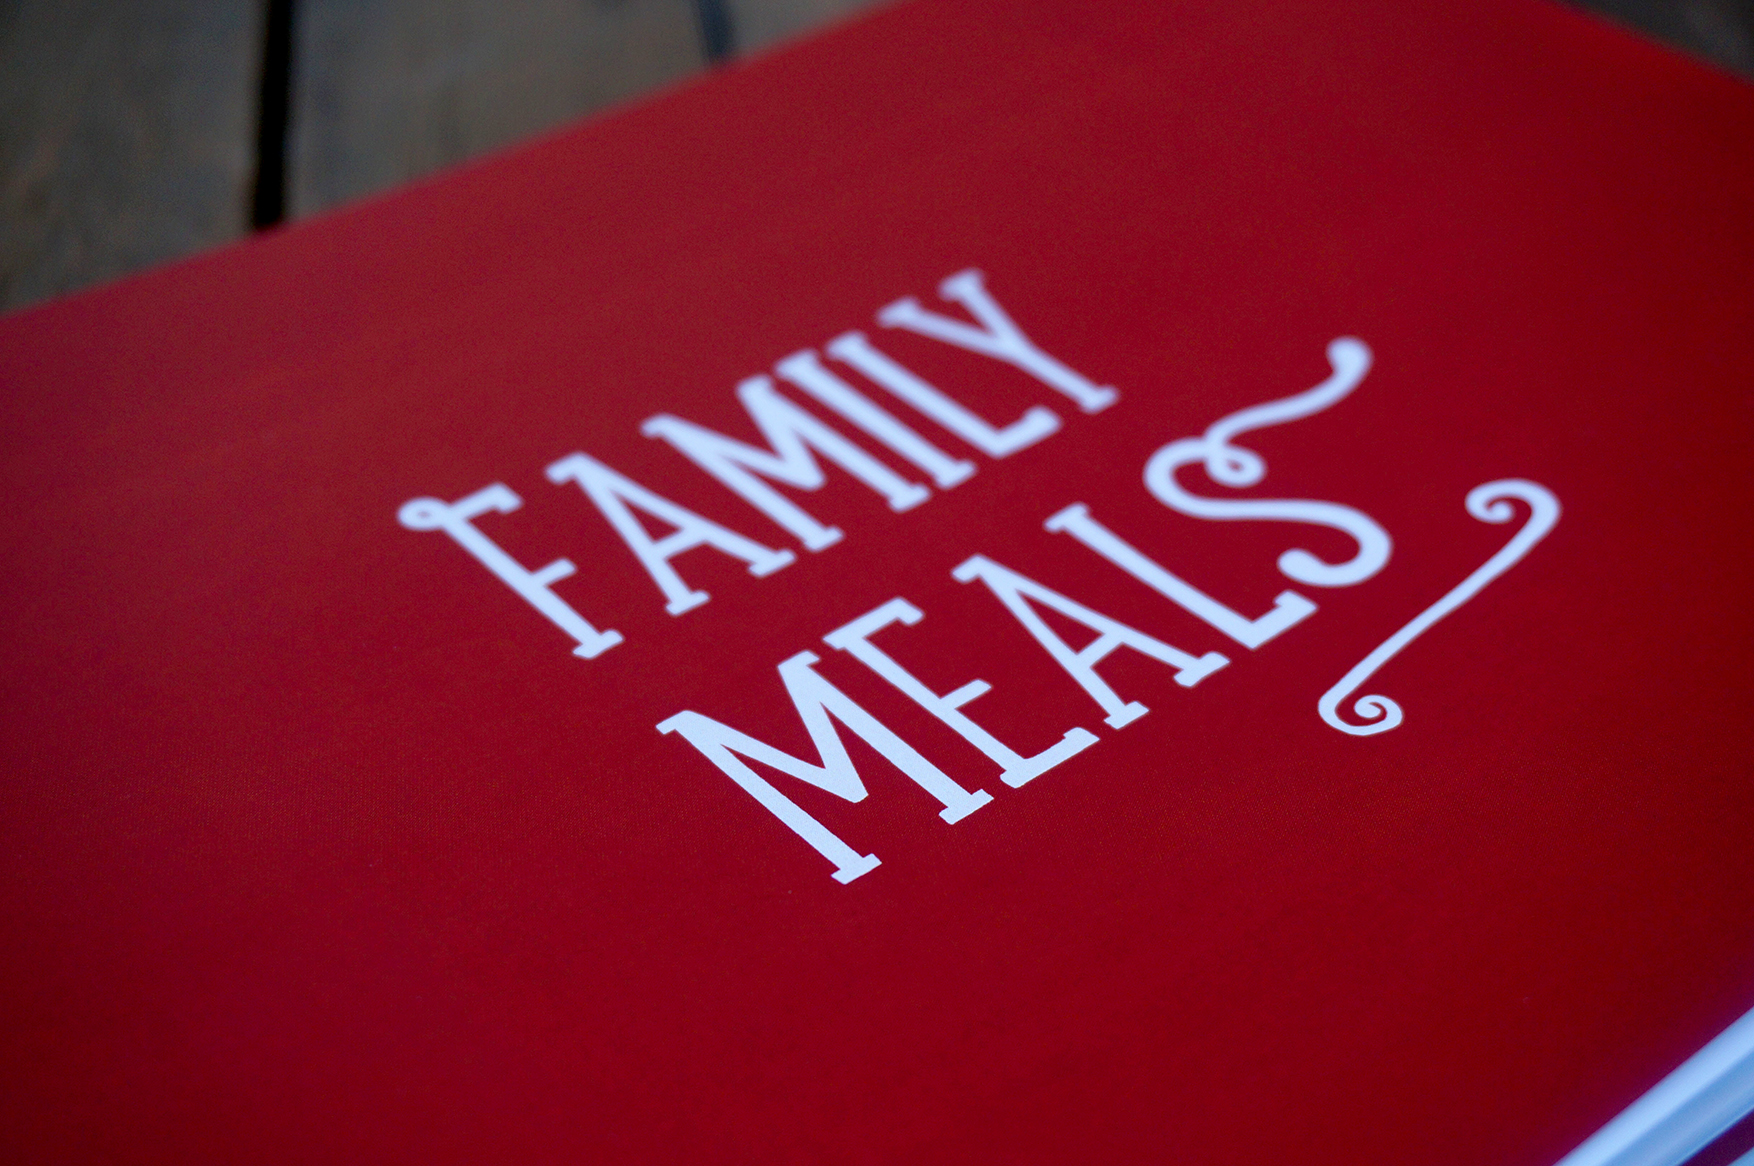 Family Meals cover page